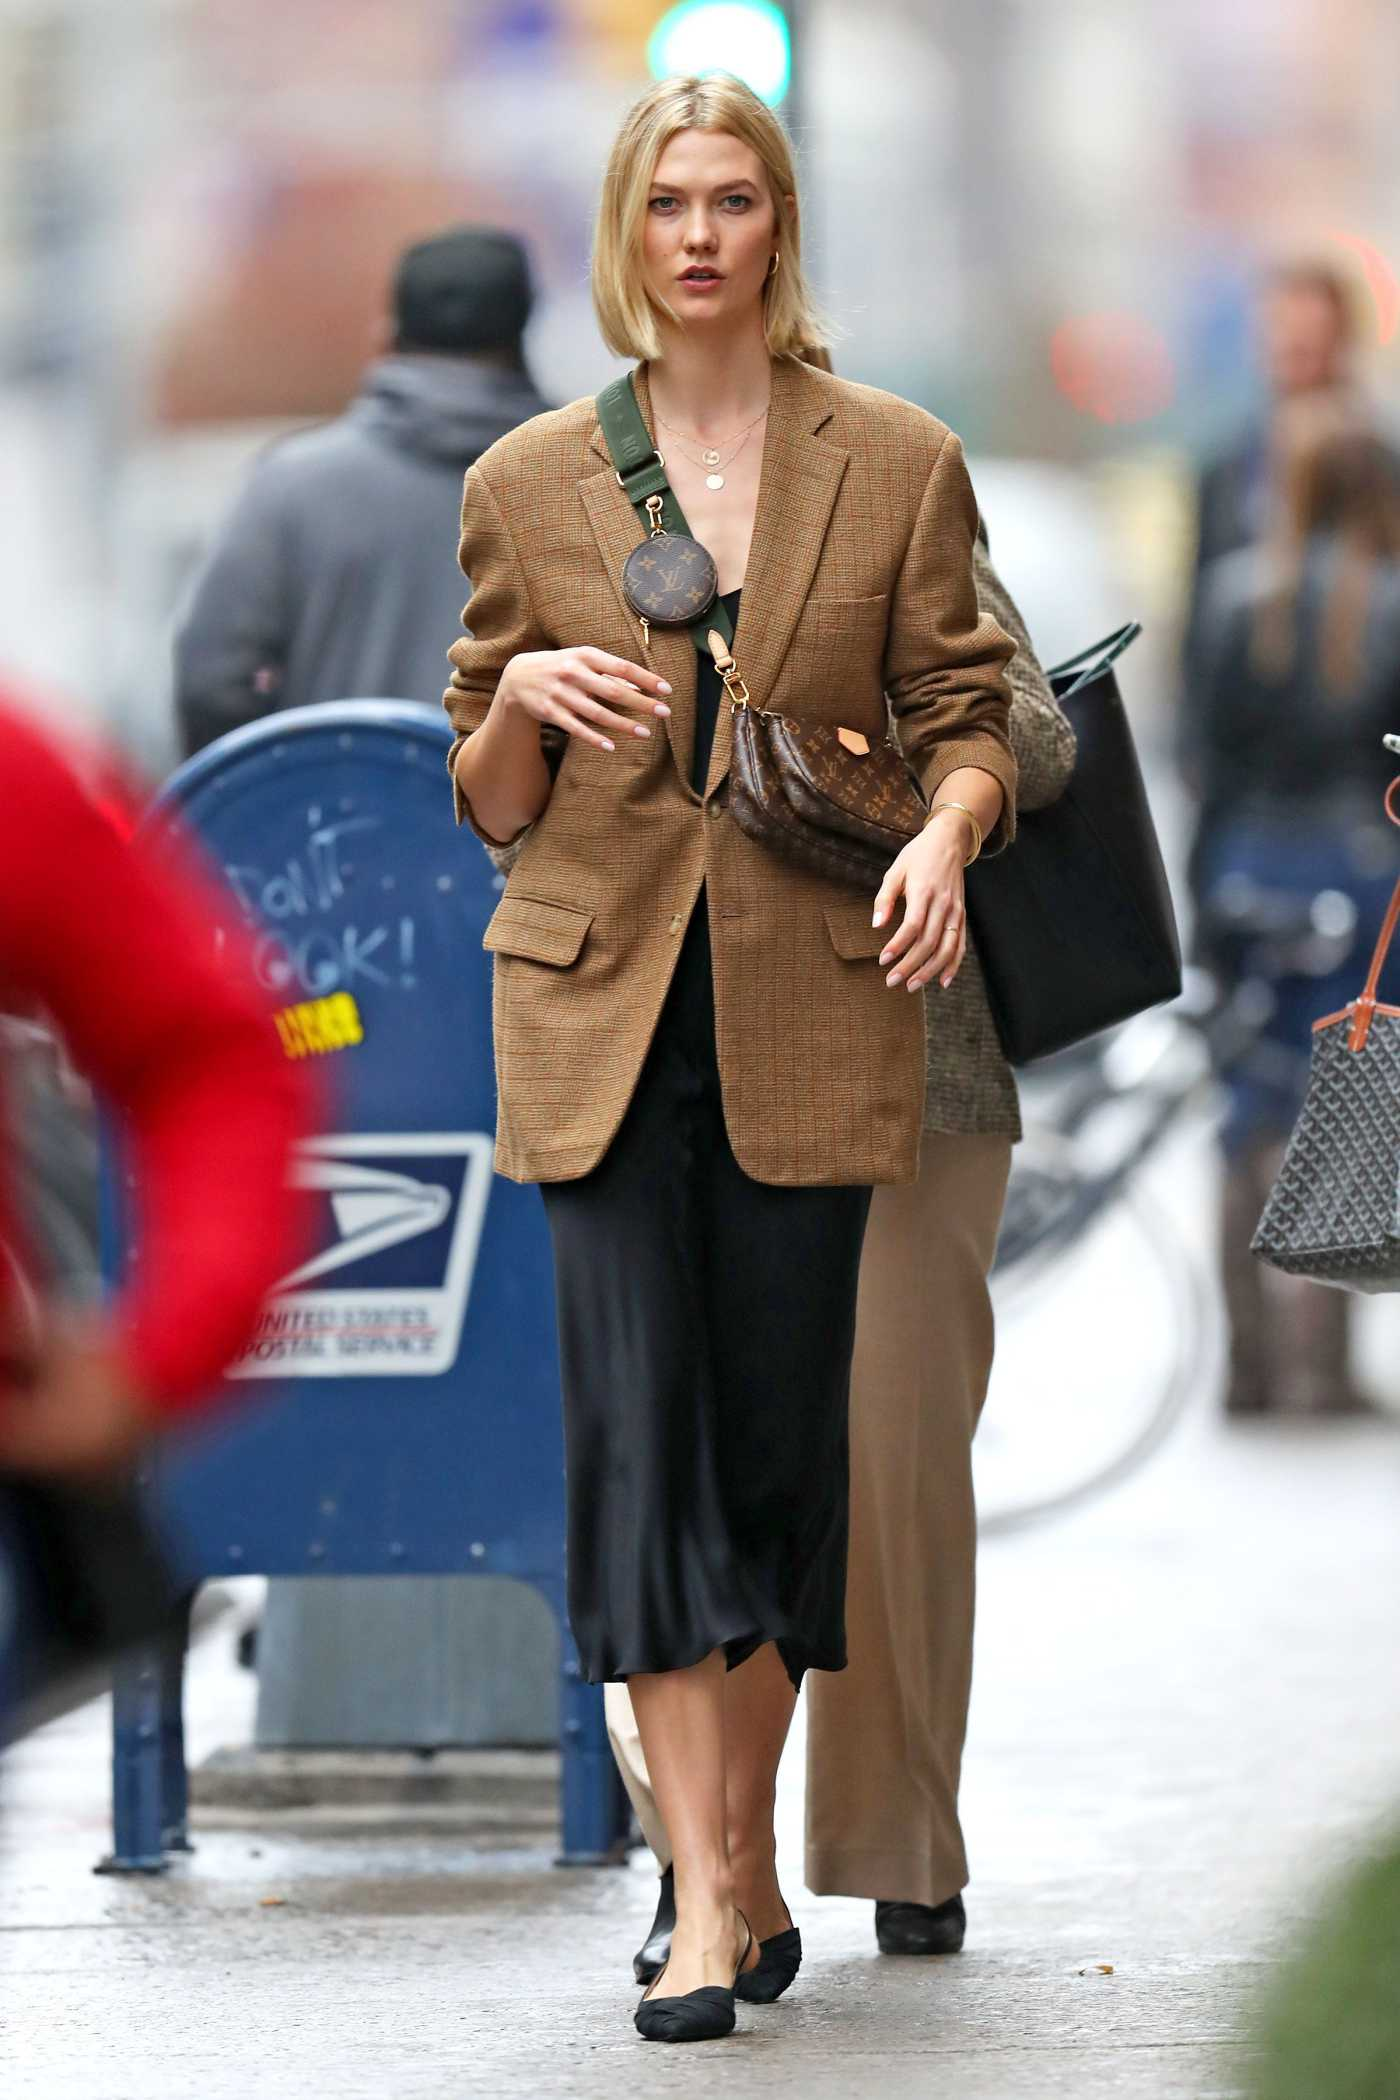 Karlie Kloss in a Beuge Blazer Was Seen Out in NY 10/30/2019